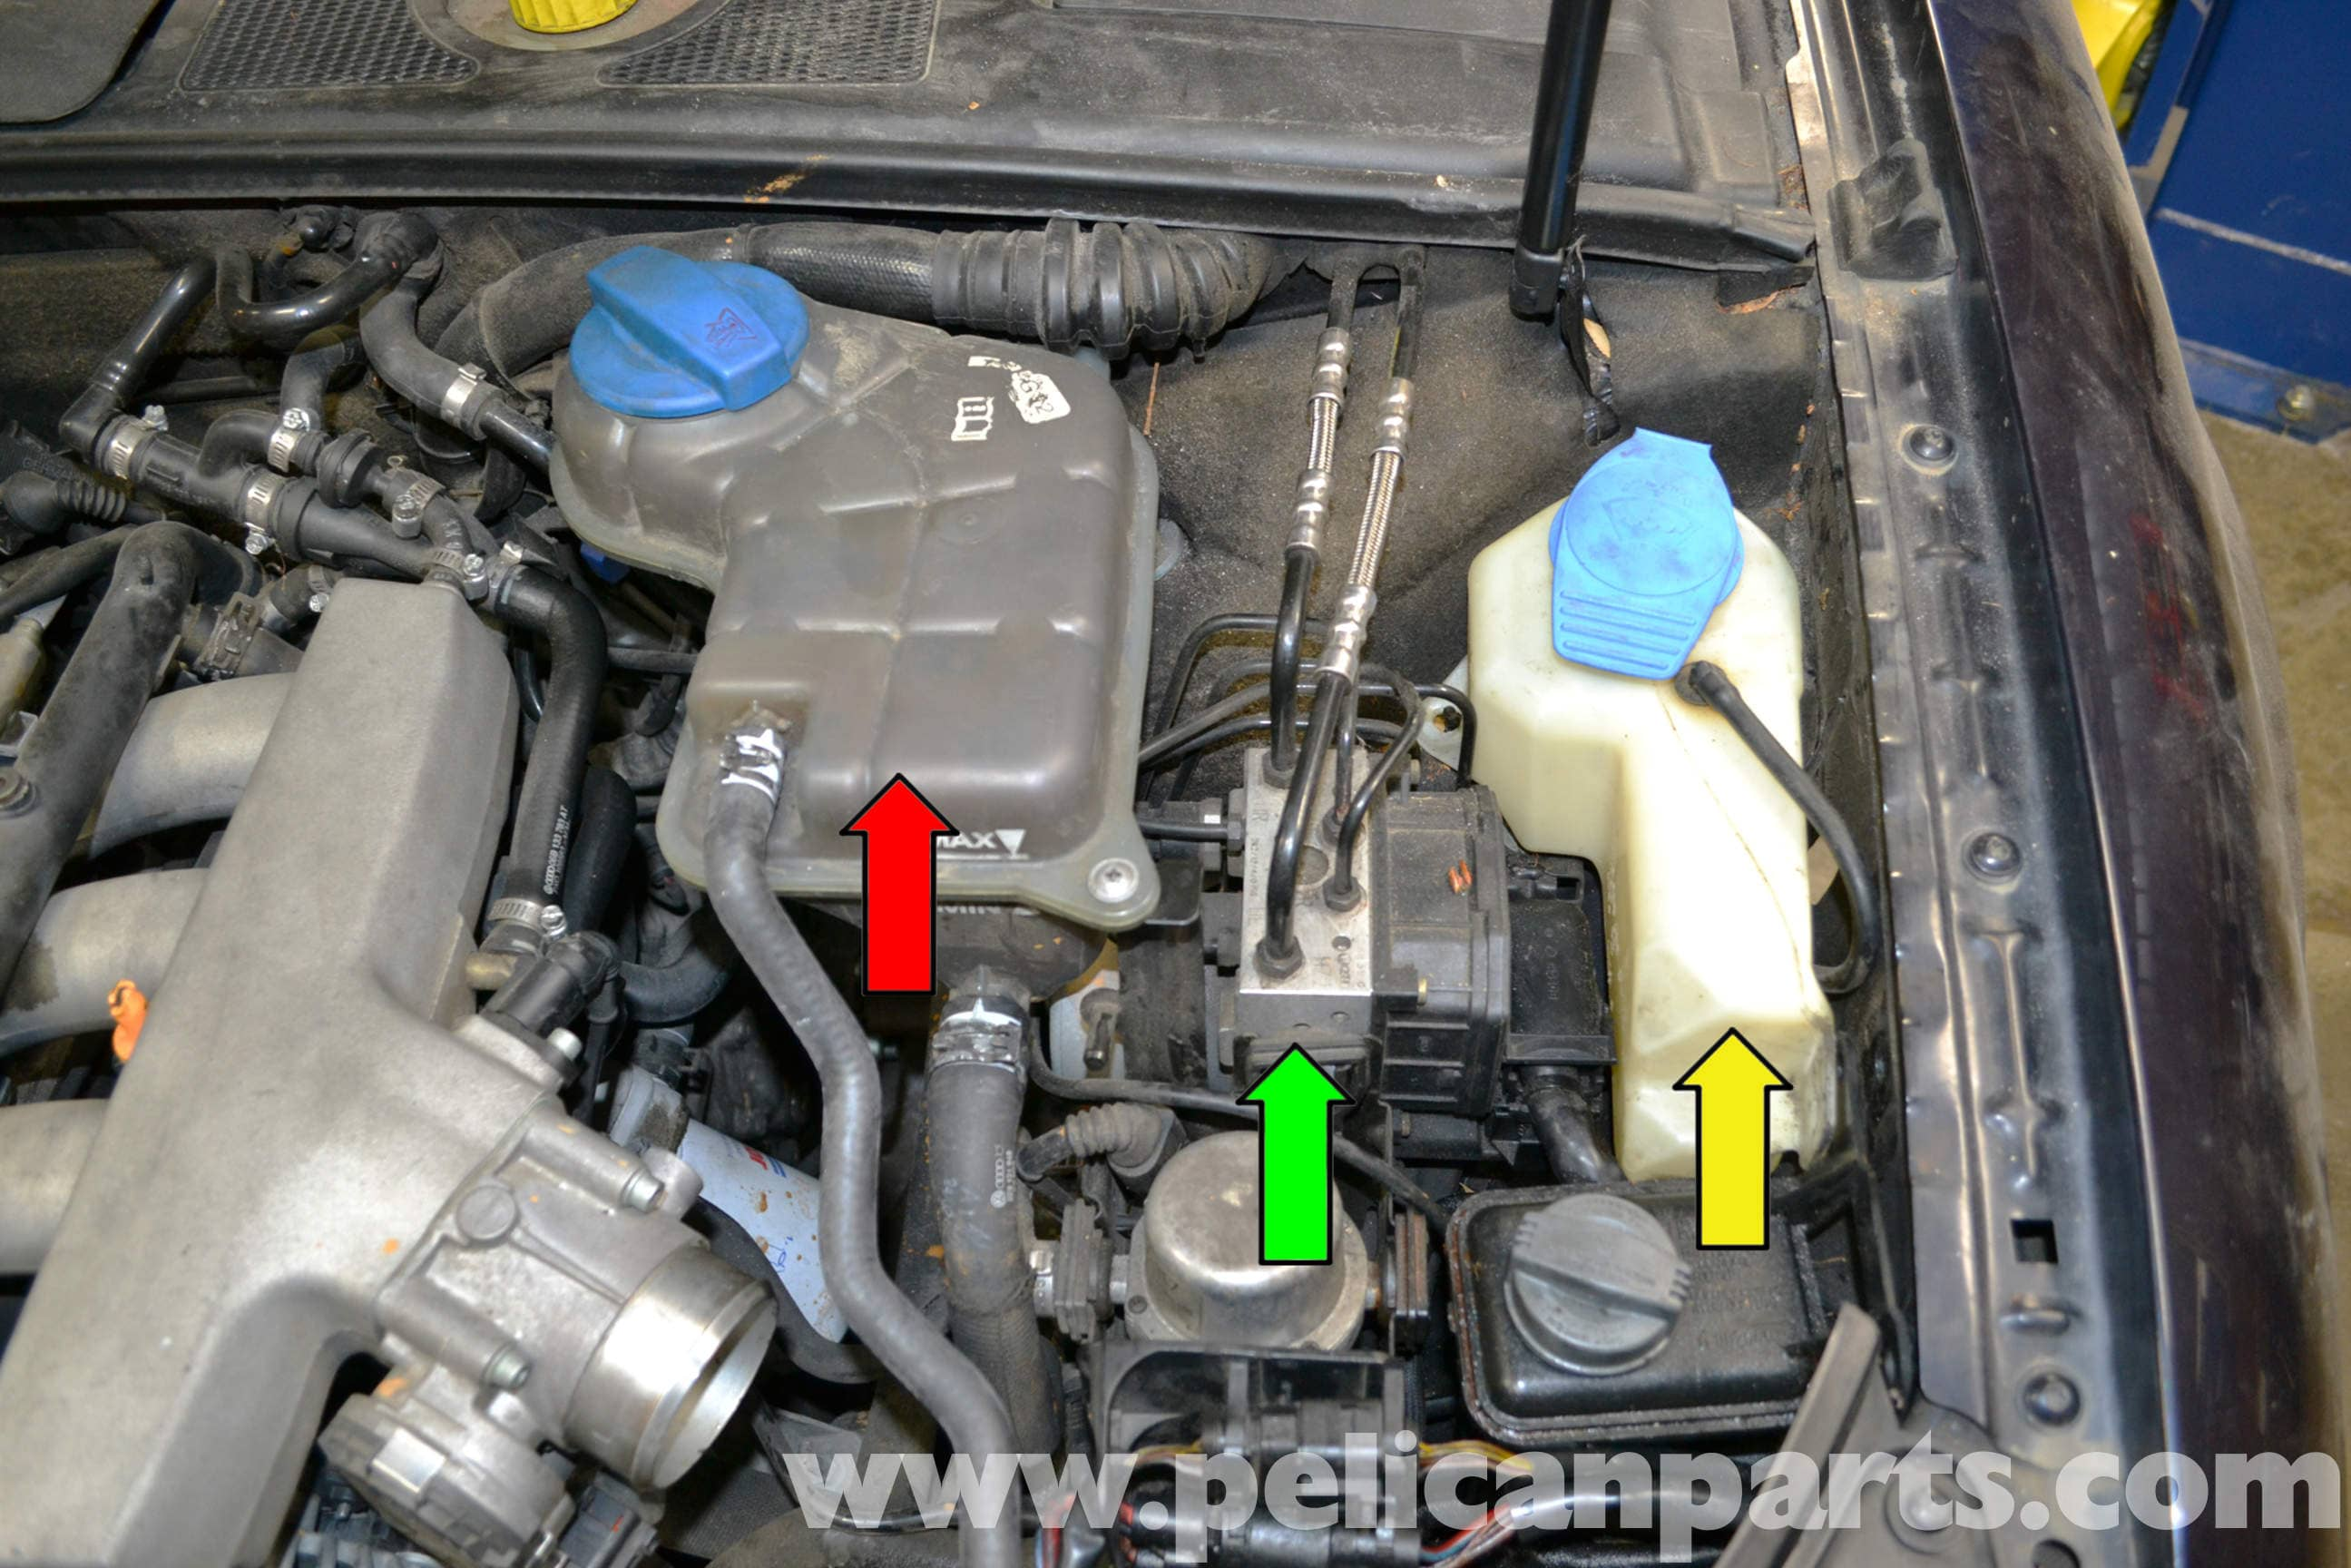 1994 to 1997 Audi A6 C4  Fuse Box Location and Fuses